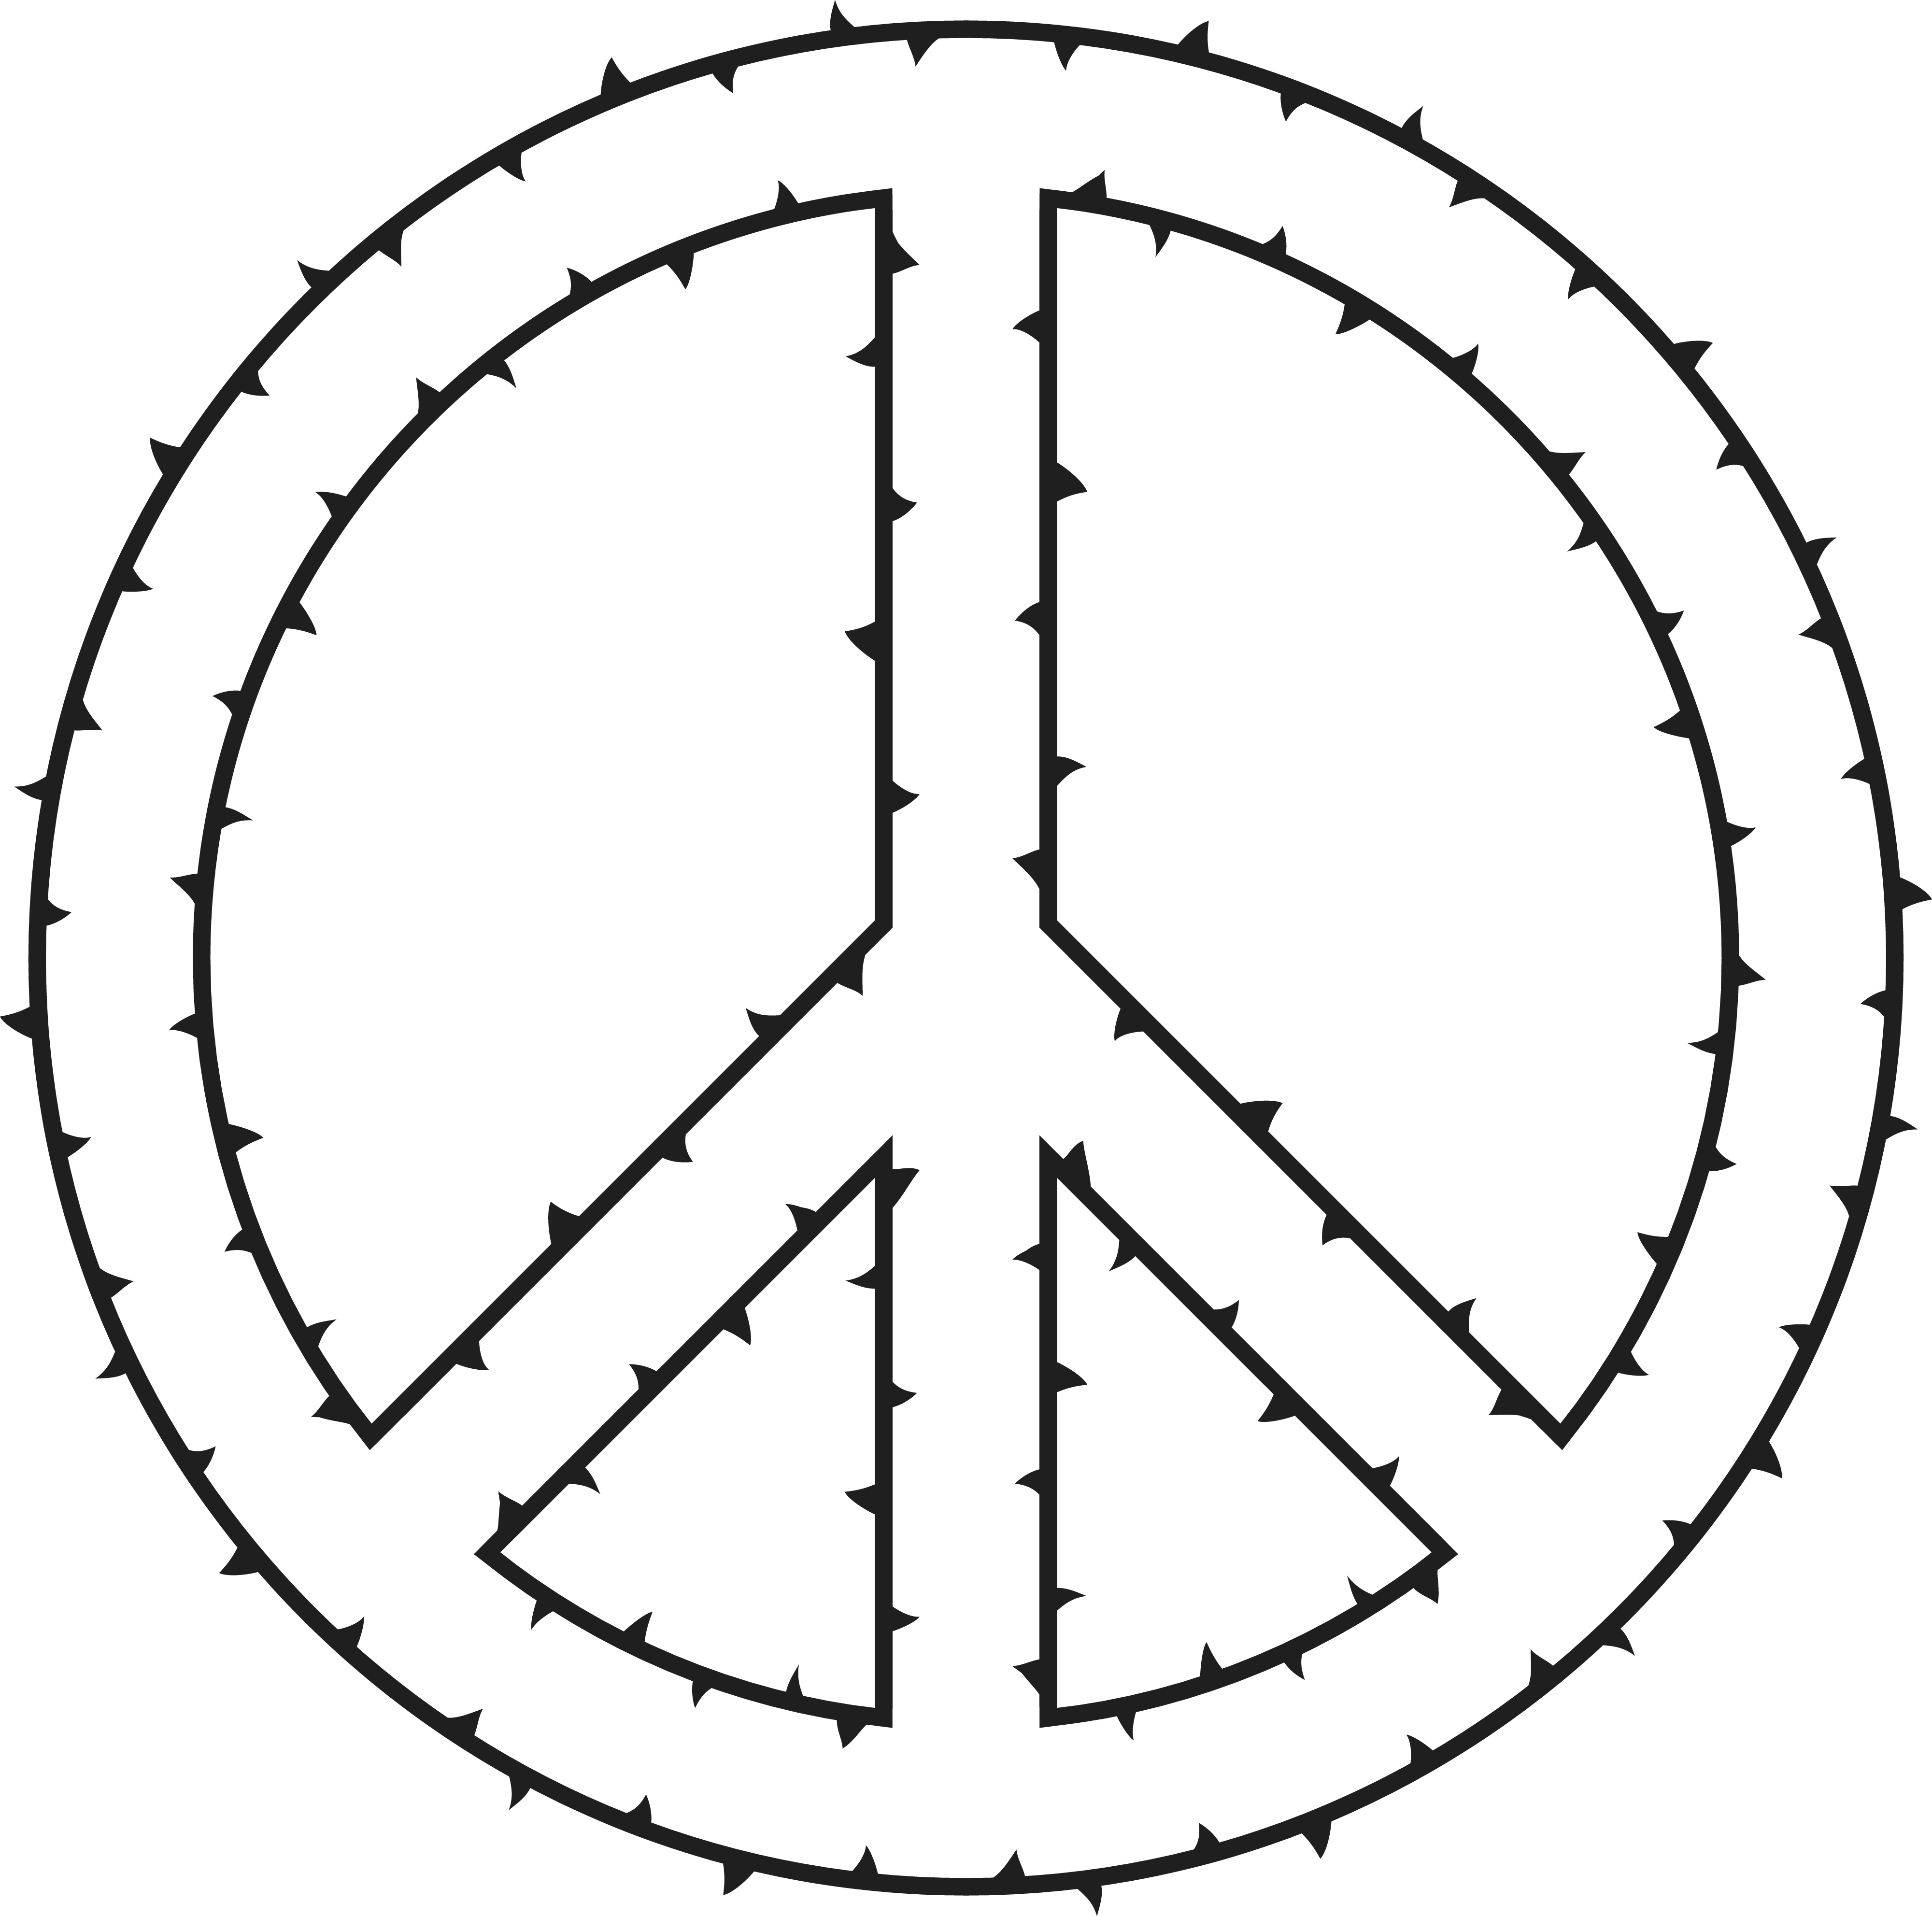 Clipart Of A peace symbol made of thorns